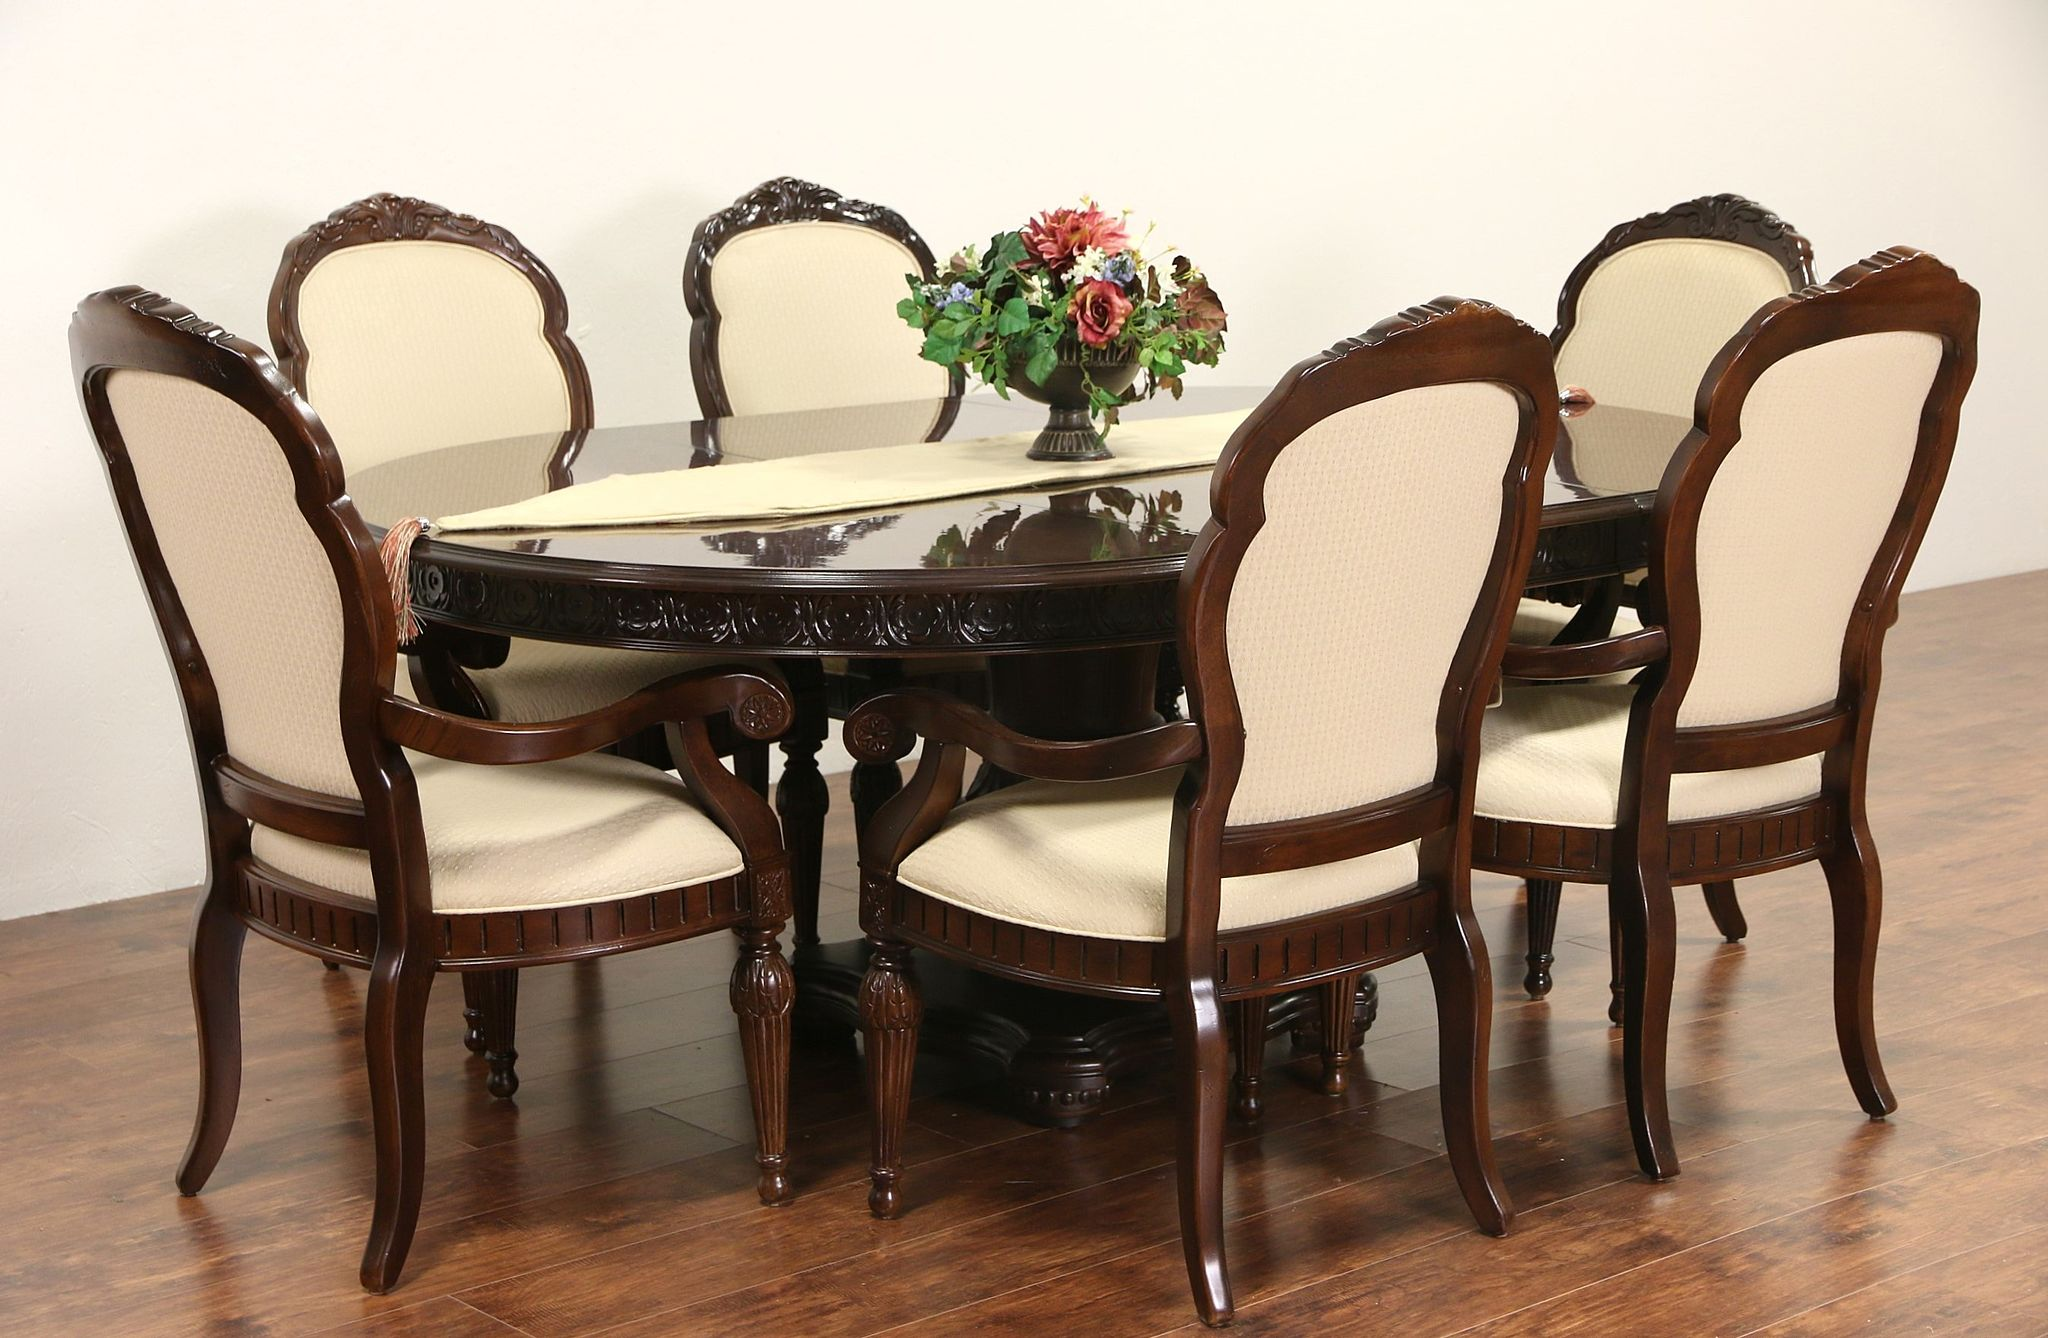 Sold bernhardt signed round cherry dining set table for Round dining set with leaf